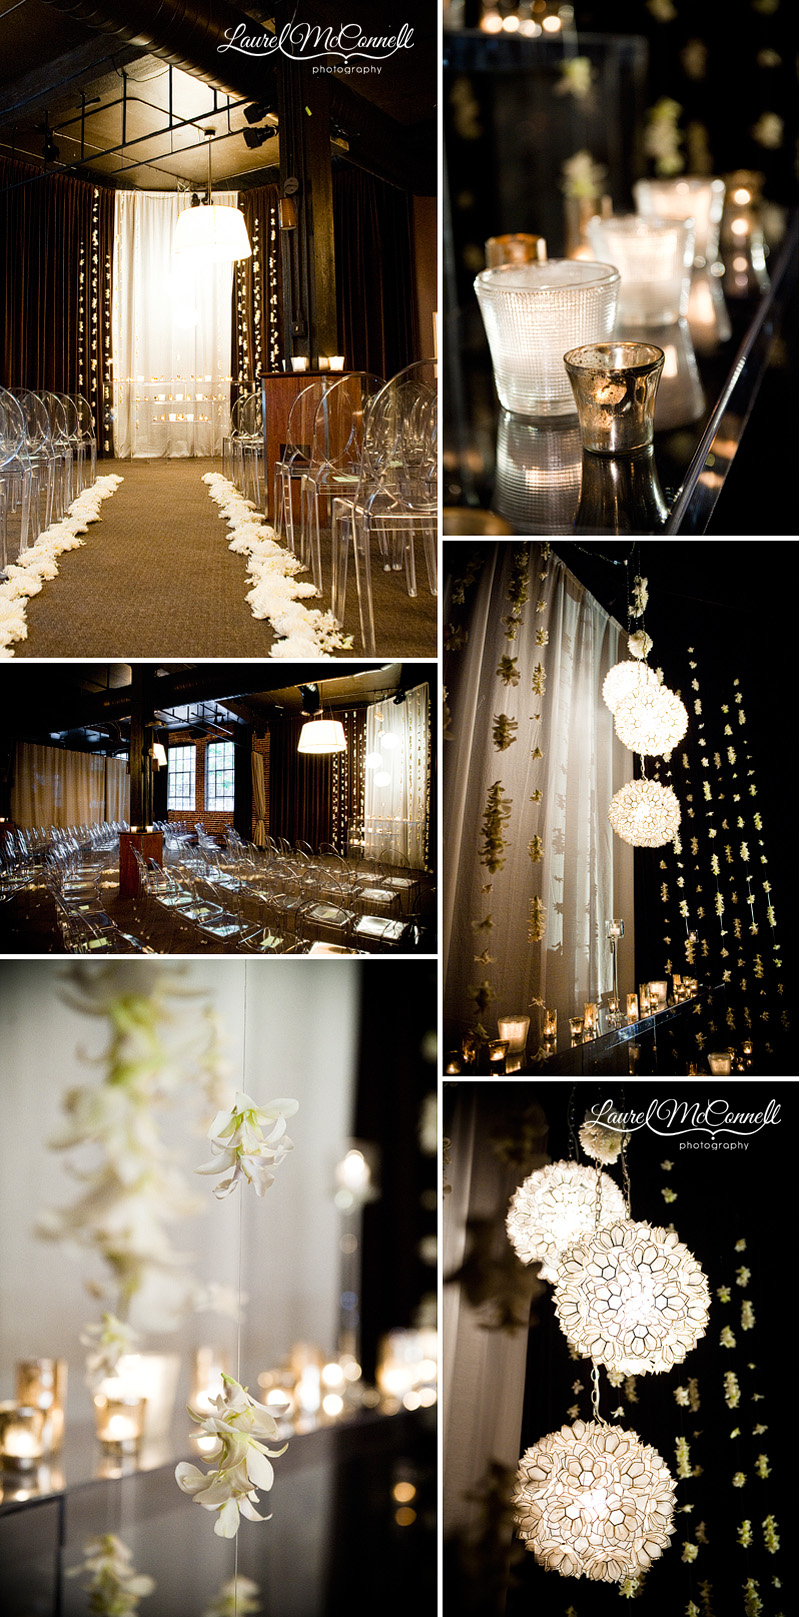 wedding decor at the palace ballroom of ghost chairs, capiz shell chandelier, and ivory flowers